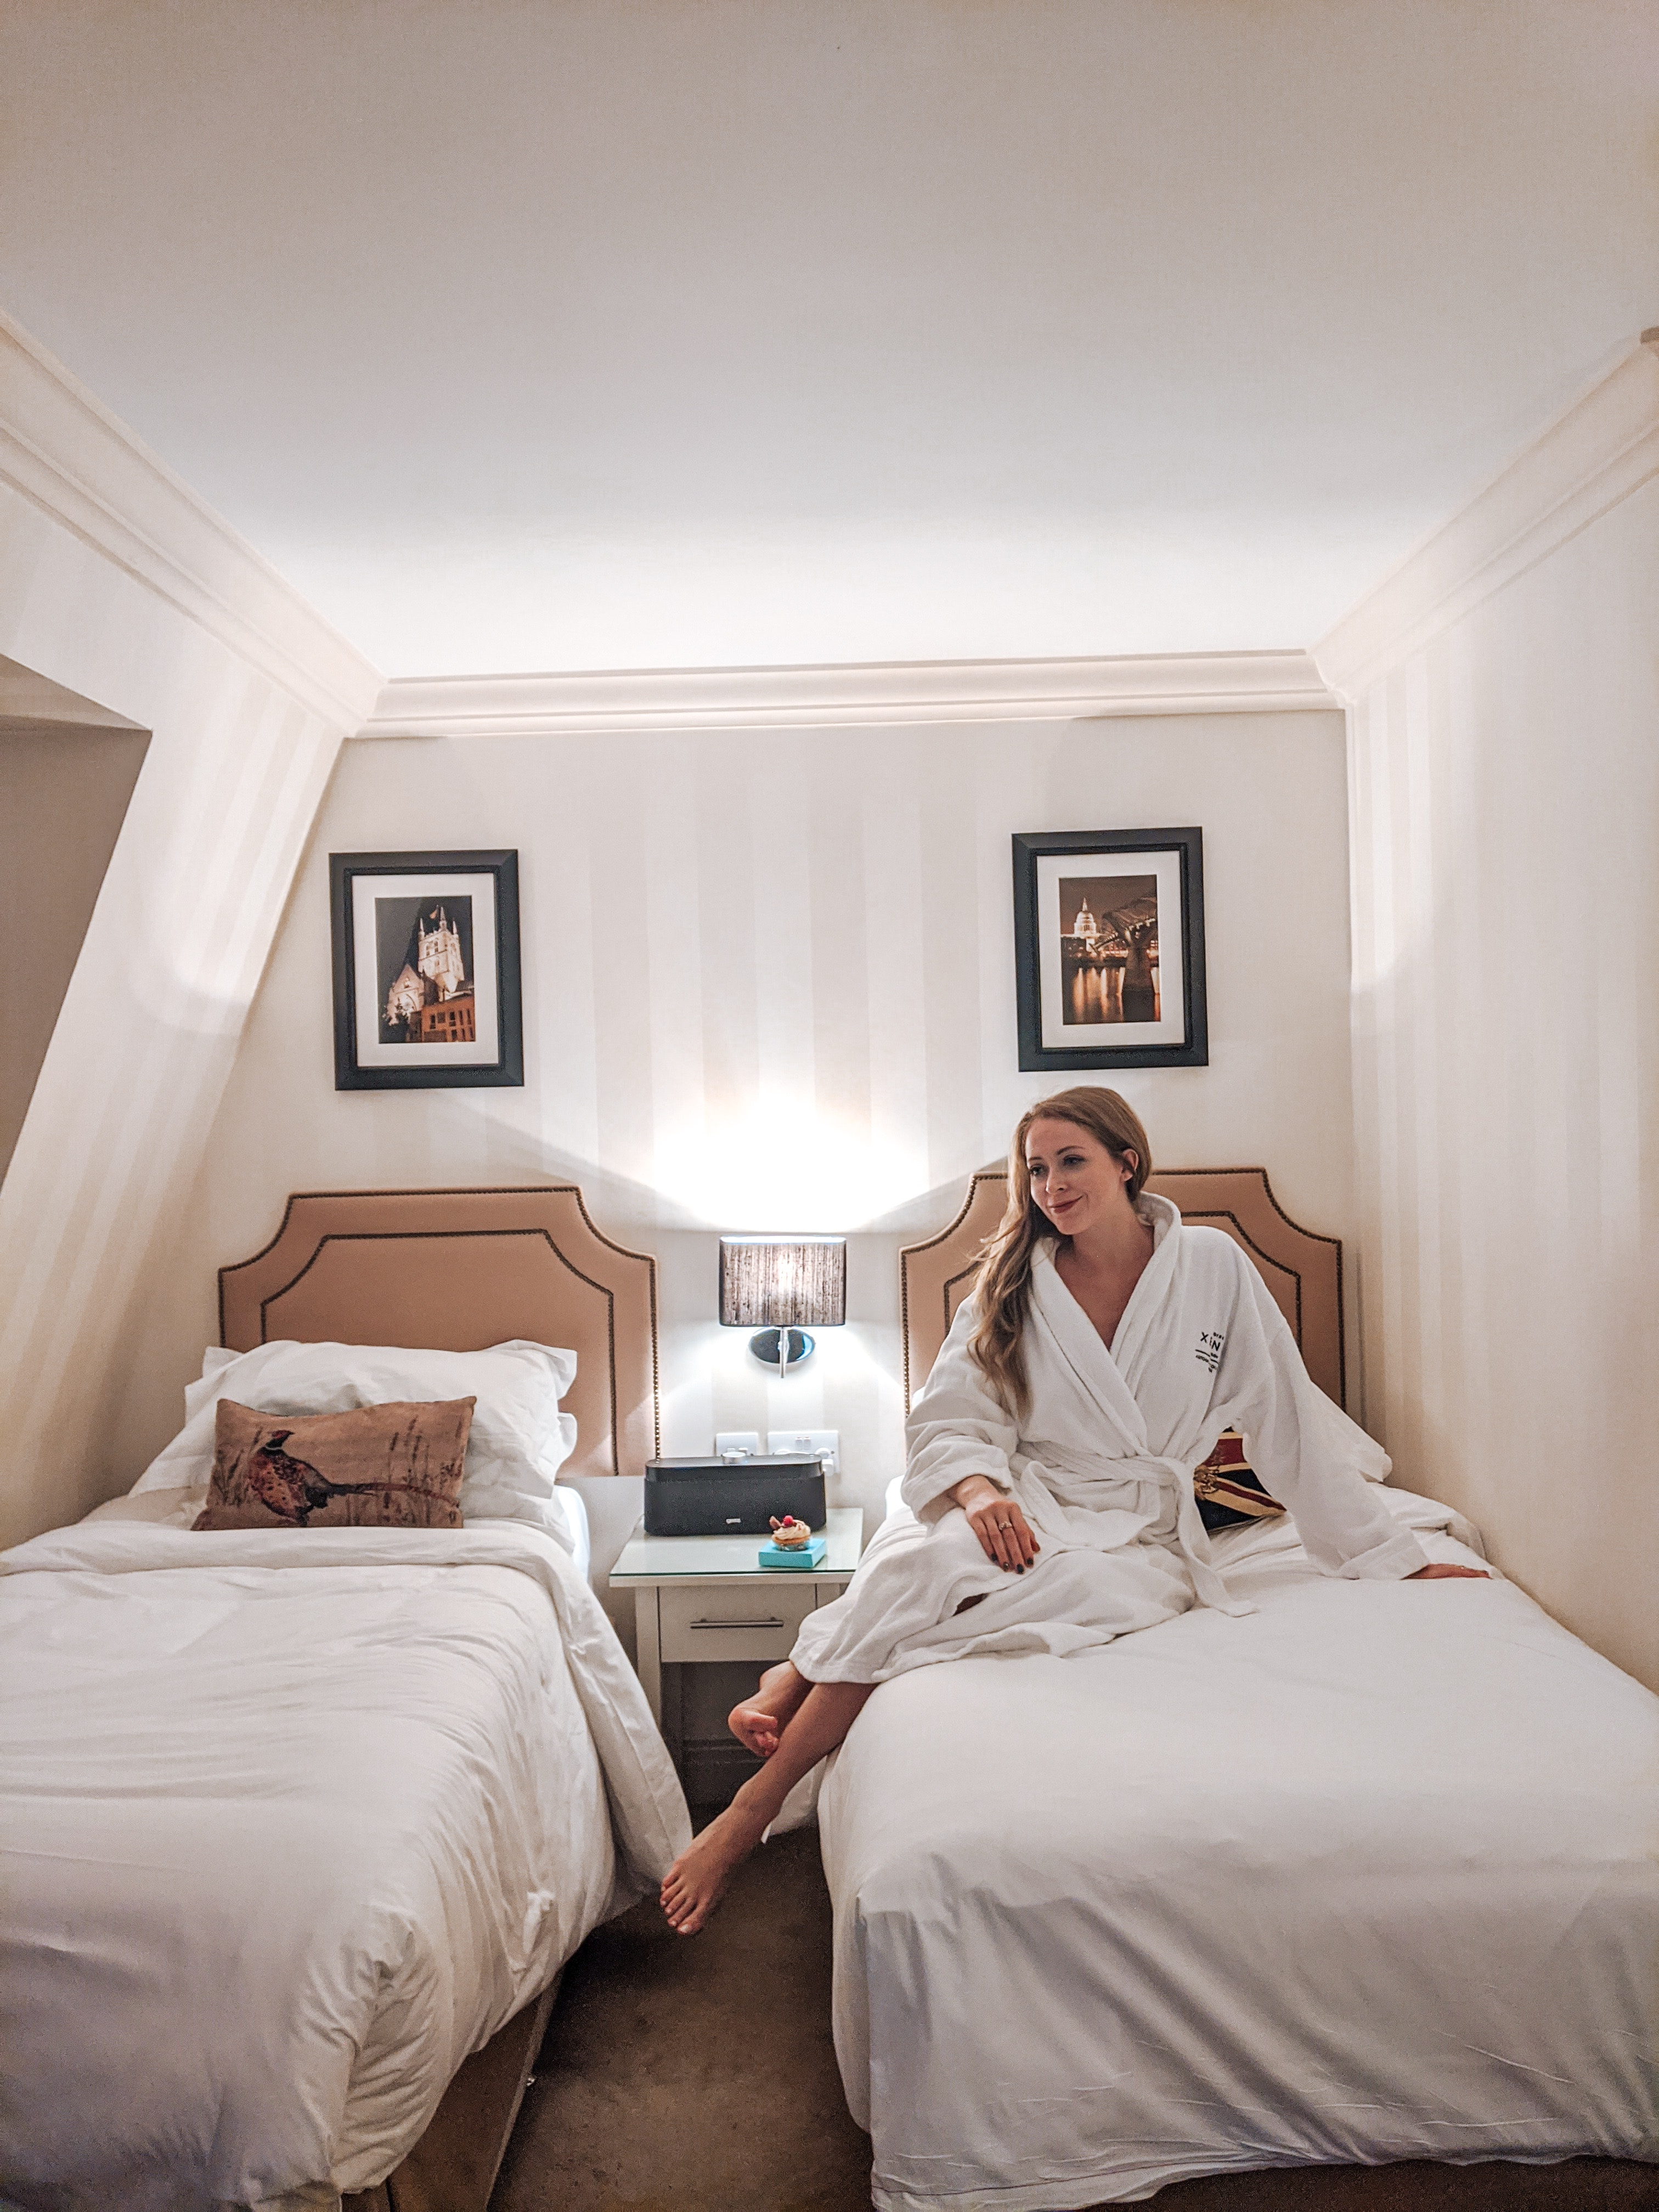 The Hotel Xenia Autograph Collection London located in Kensington was perfect for a 3 night stay in central London. And how cute are these twin beds? I felt like I was in a chic boarding school!